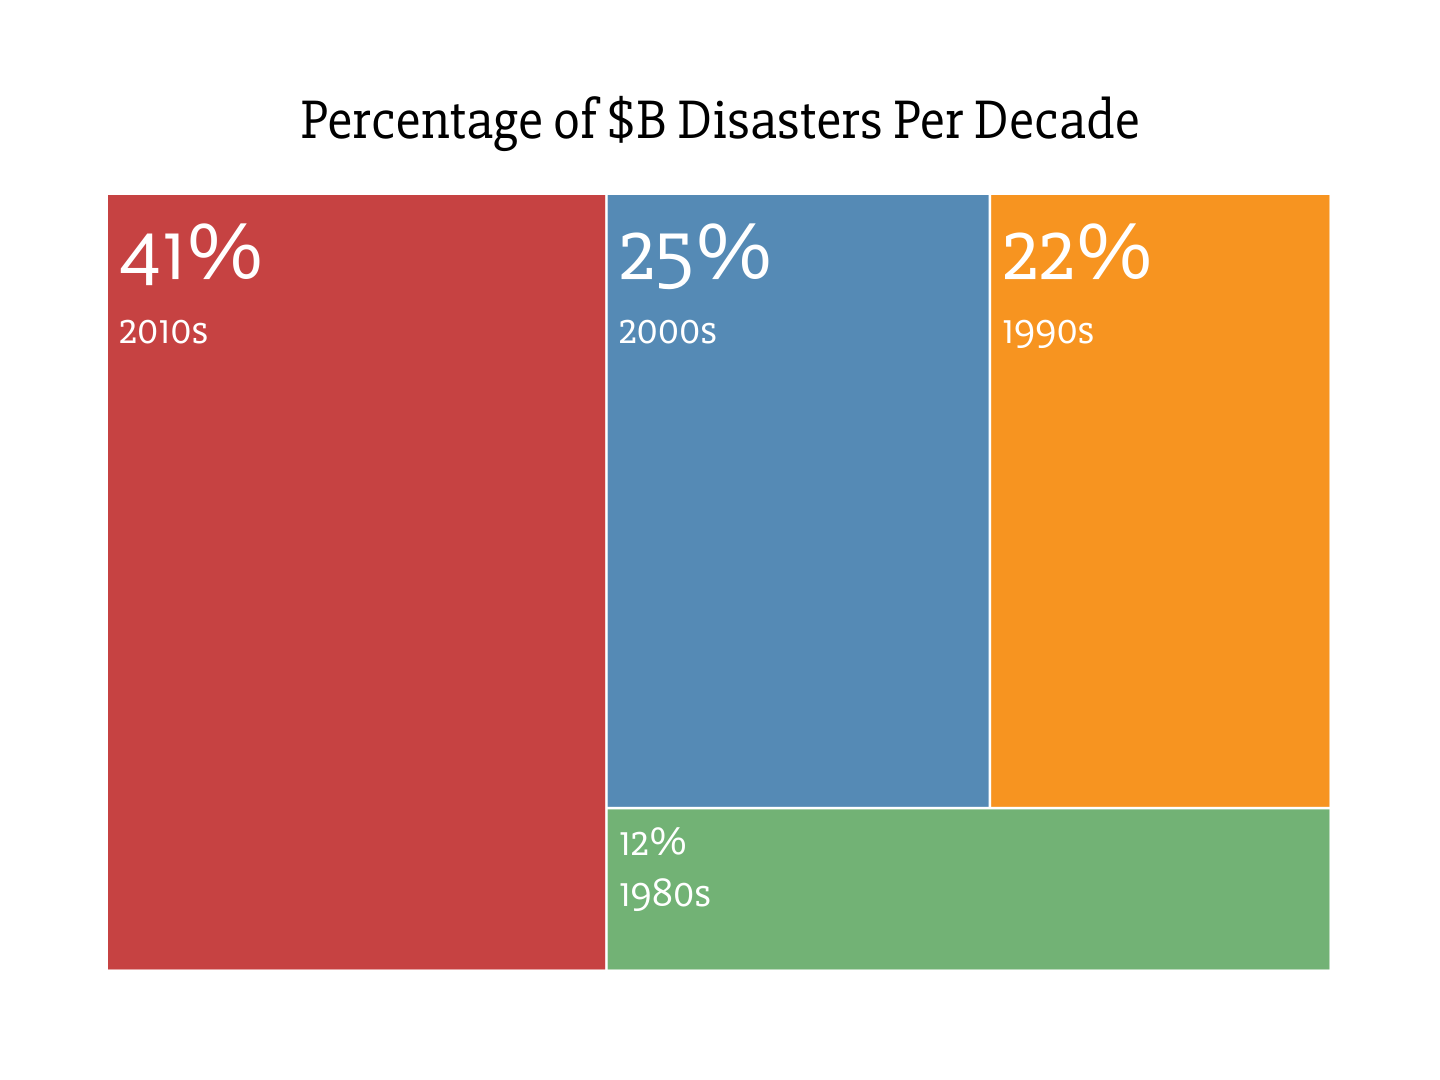 Percentage of Billion-Dollar Disasters Per Decade